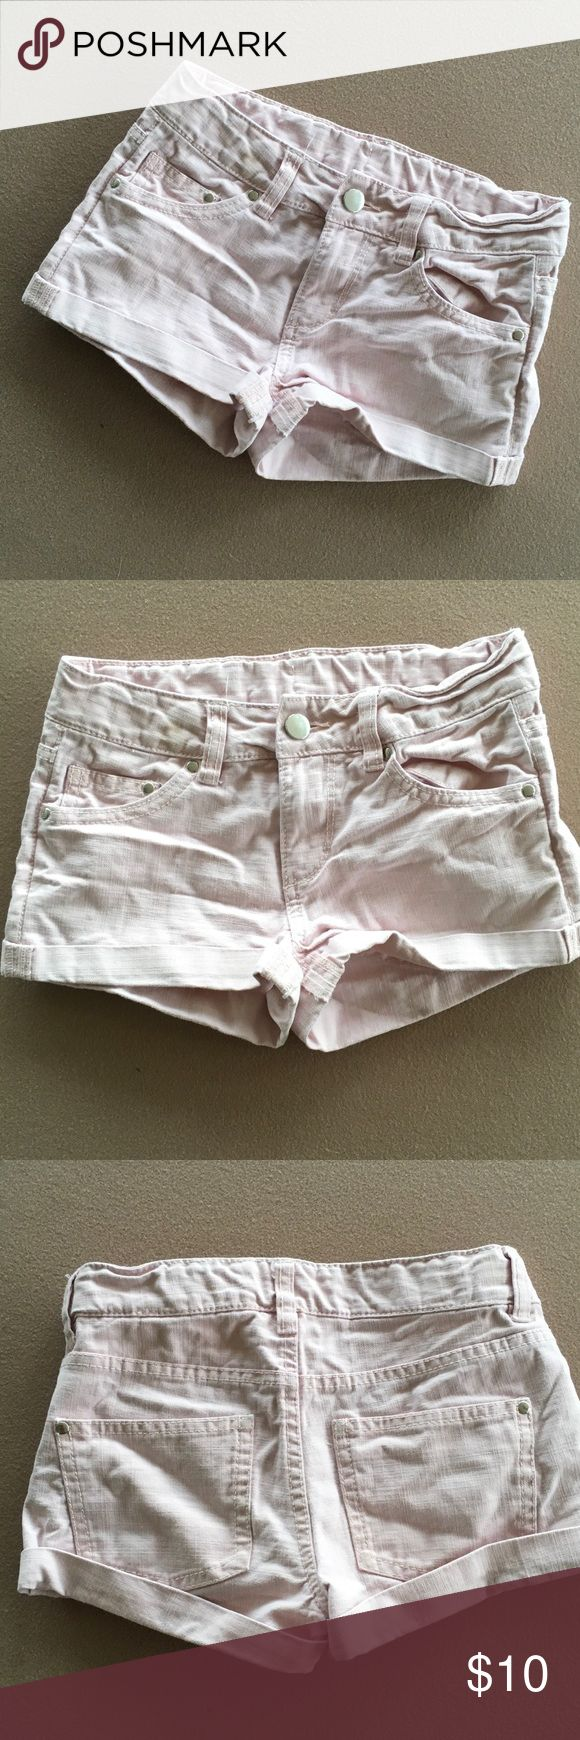 Girls light pink shorts Light pink shorts from H&M.  Size 8-9, slight discoloration on waist and as shown in last pic, may come out in wash otherwise great shape. H&M Bottoms Shorts